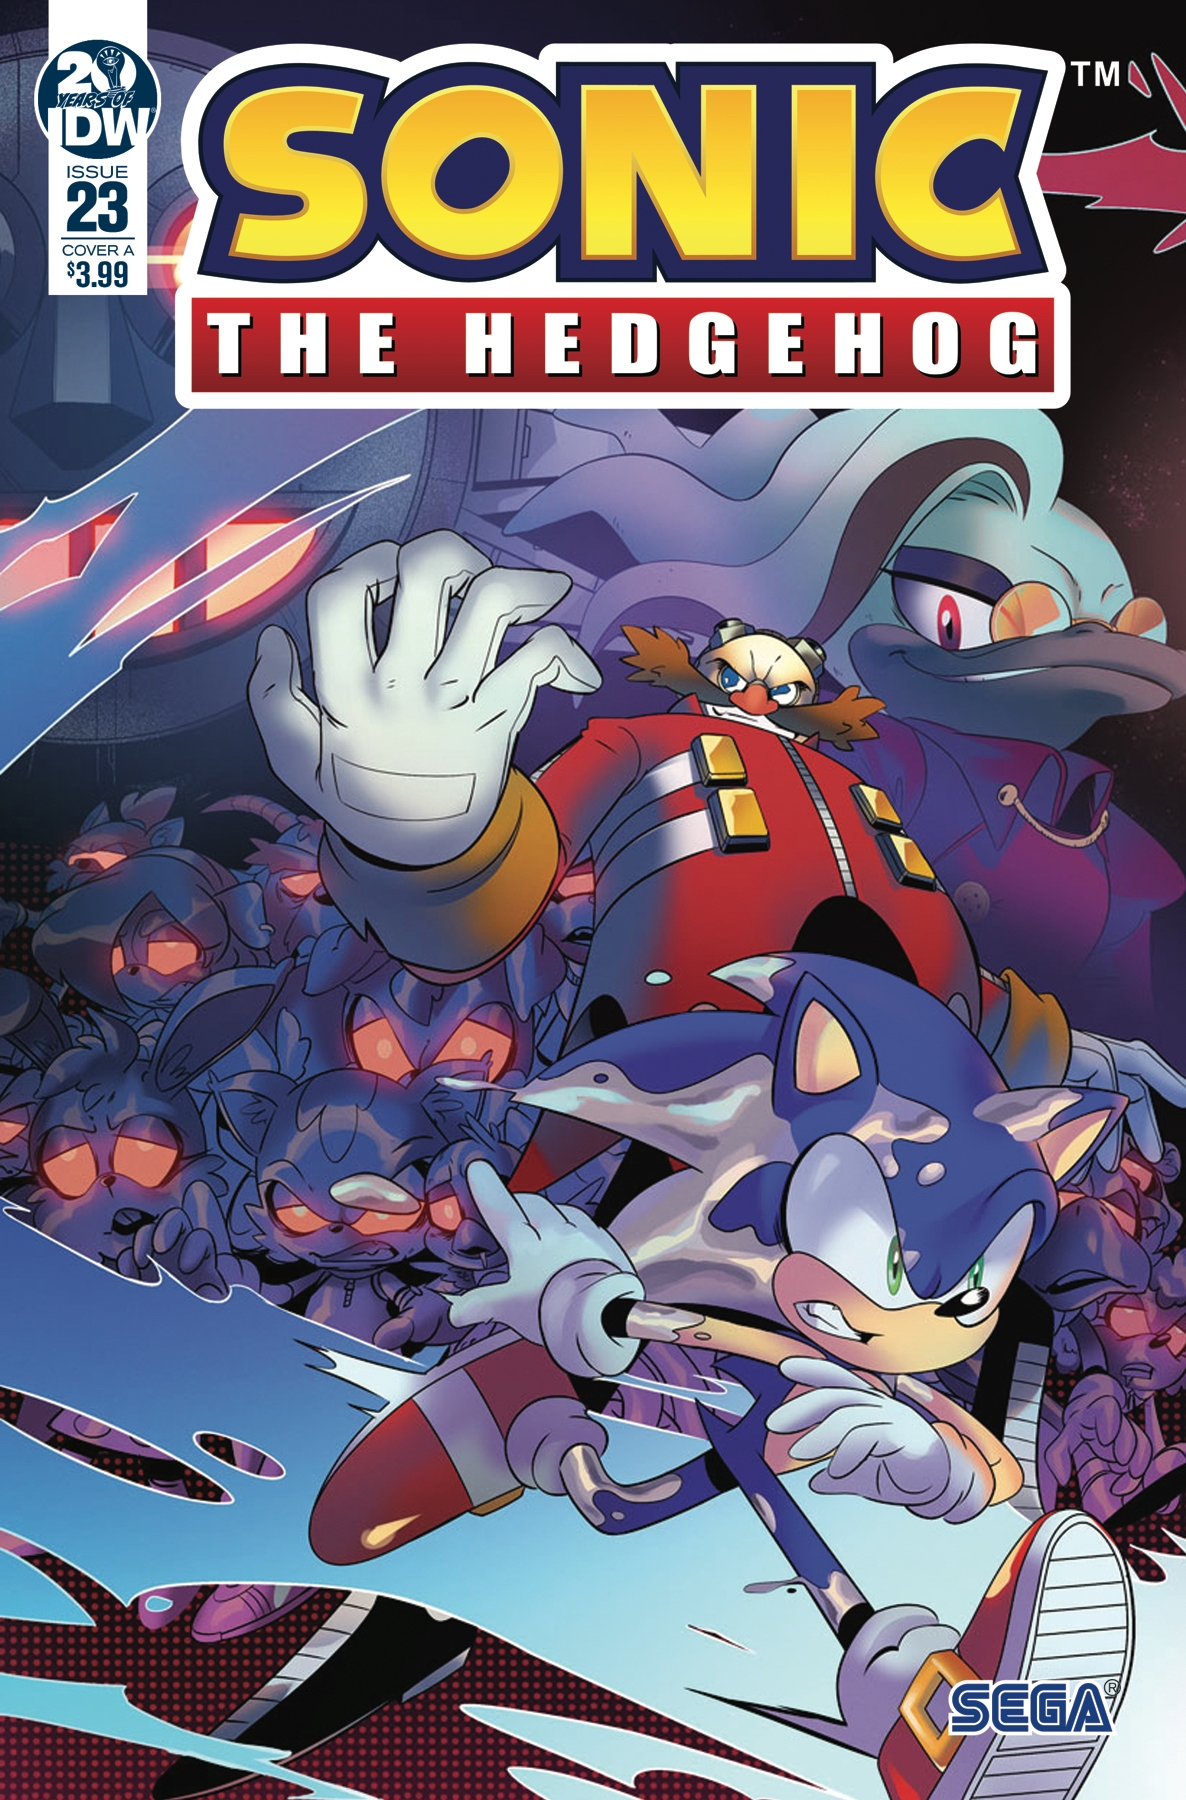 Sonic The Hedgehog #23 Cover A